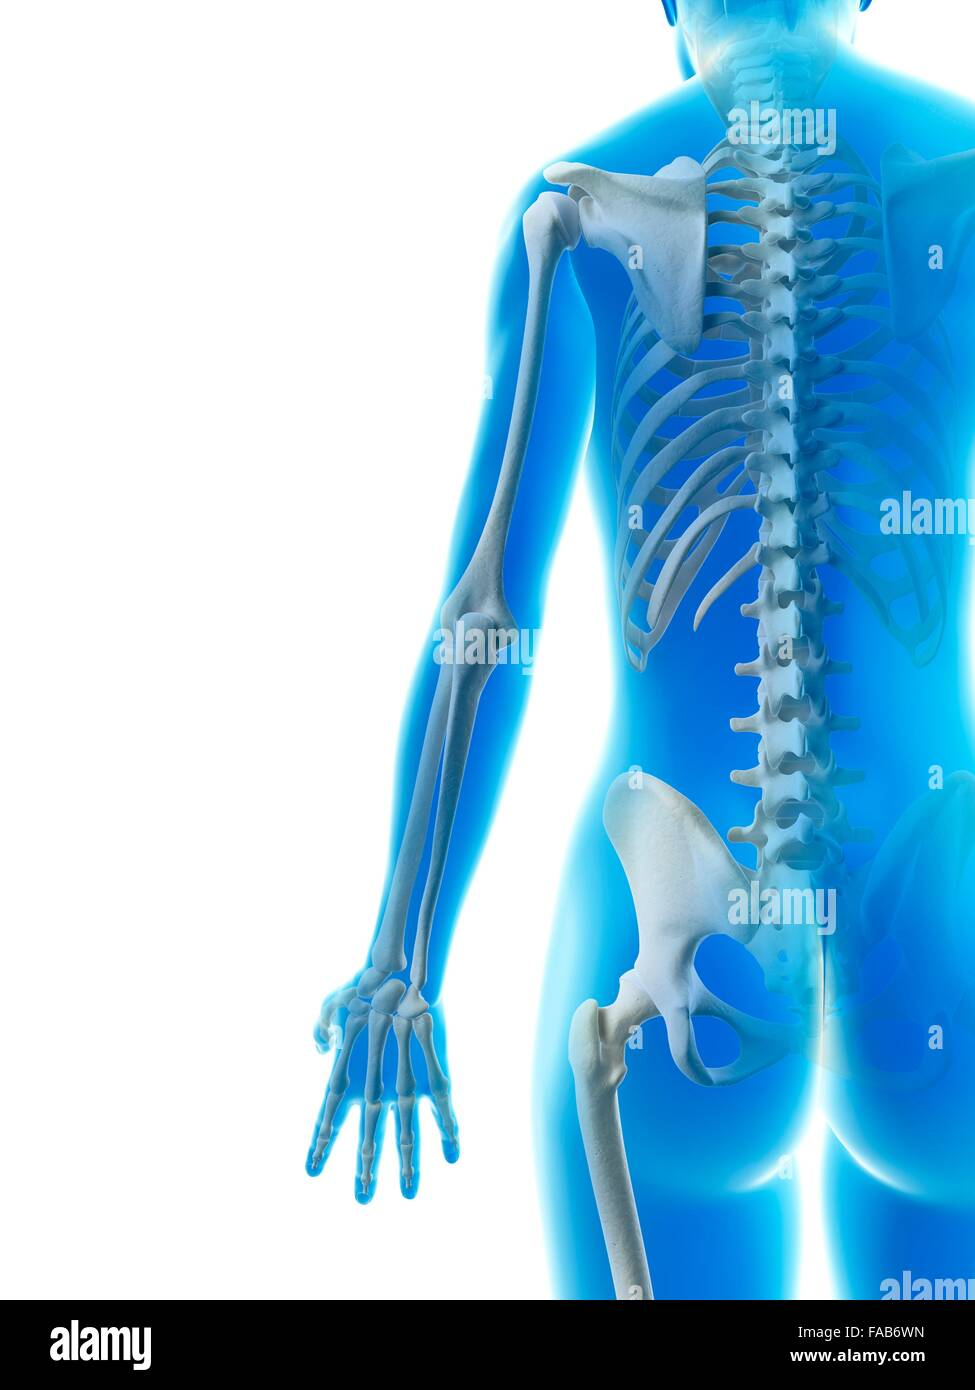 Spinal Structure Stock Photos & Spinal Structure Stock Images - Alamy